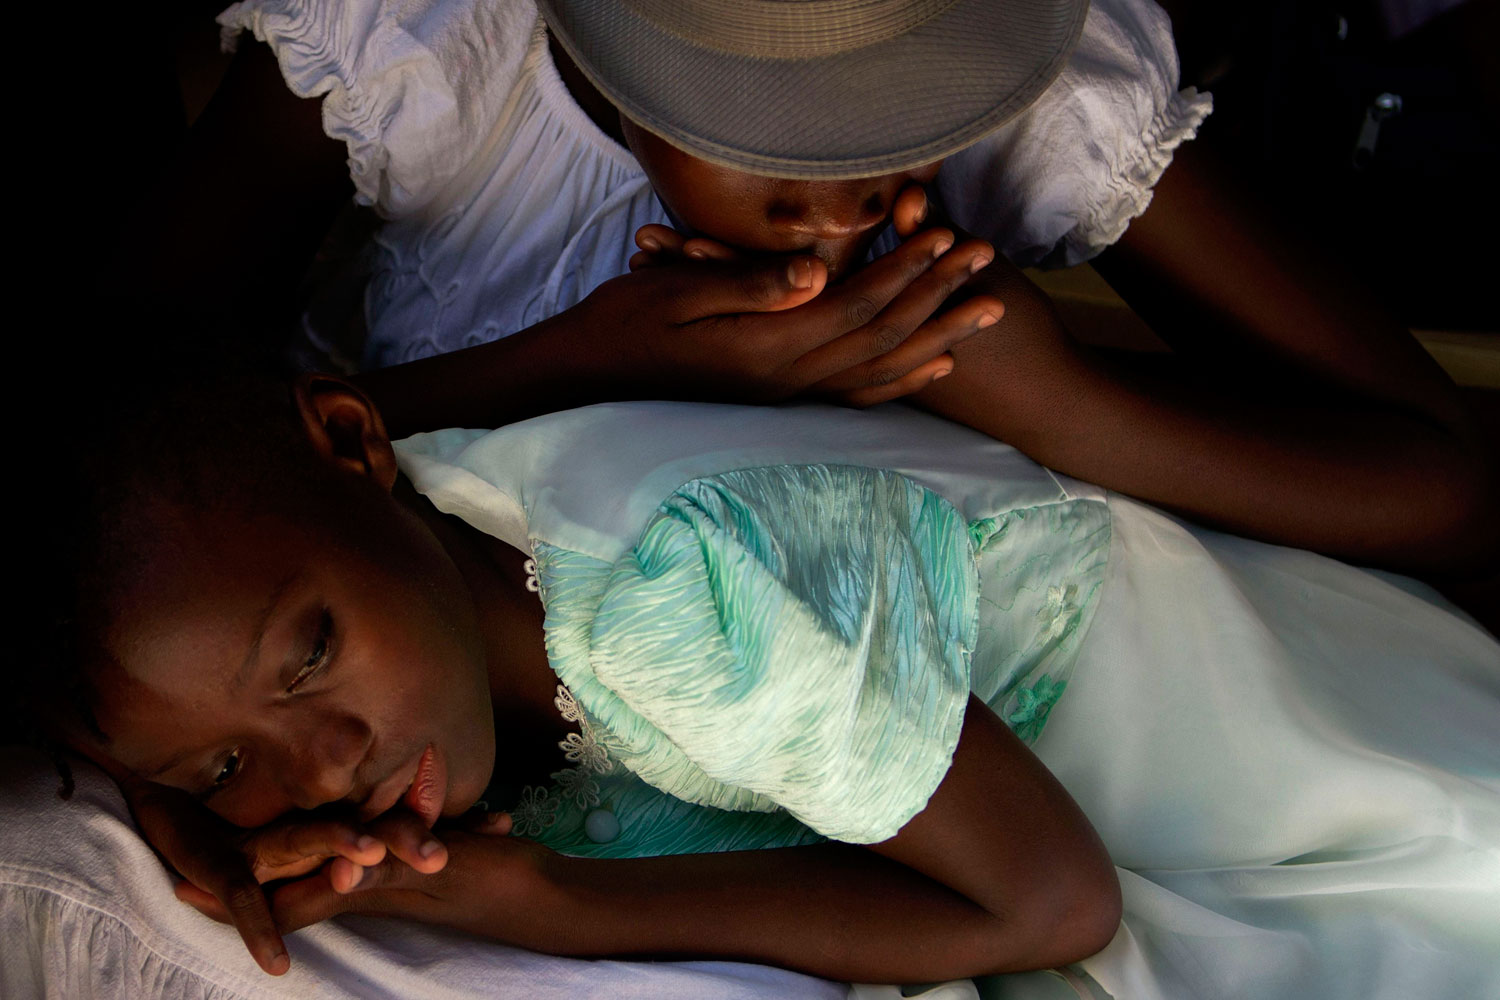 August 20, 2011. Girls rest during a gathering of schools from the Carrefour neighborhood of Port-au-Prince. A year and a half after the devastating earthquake, recovery is still lagging.